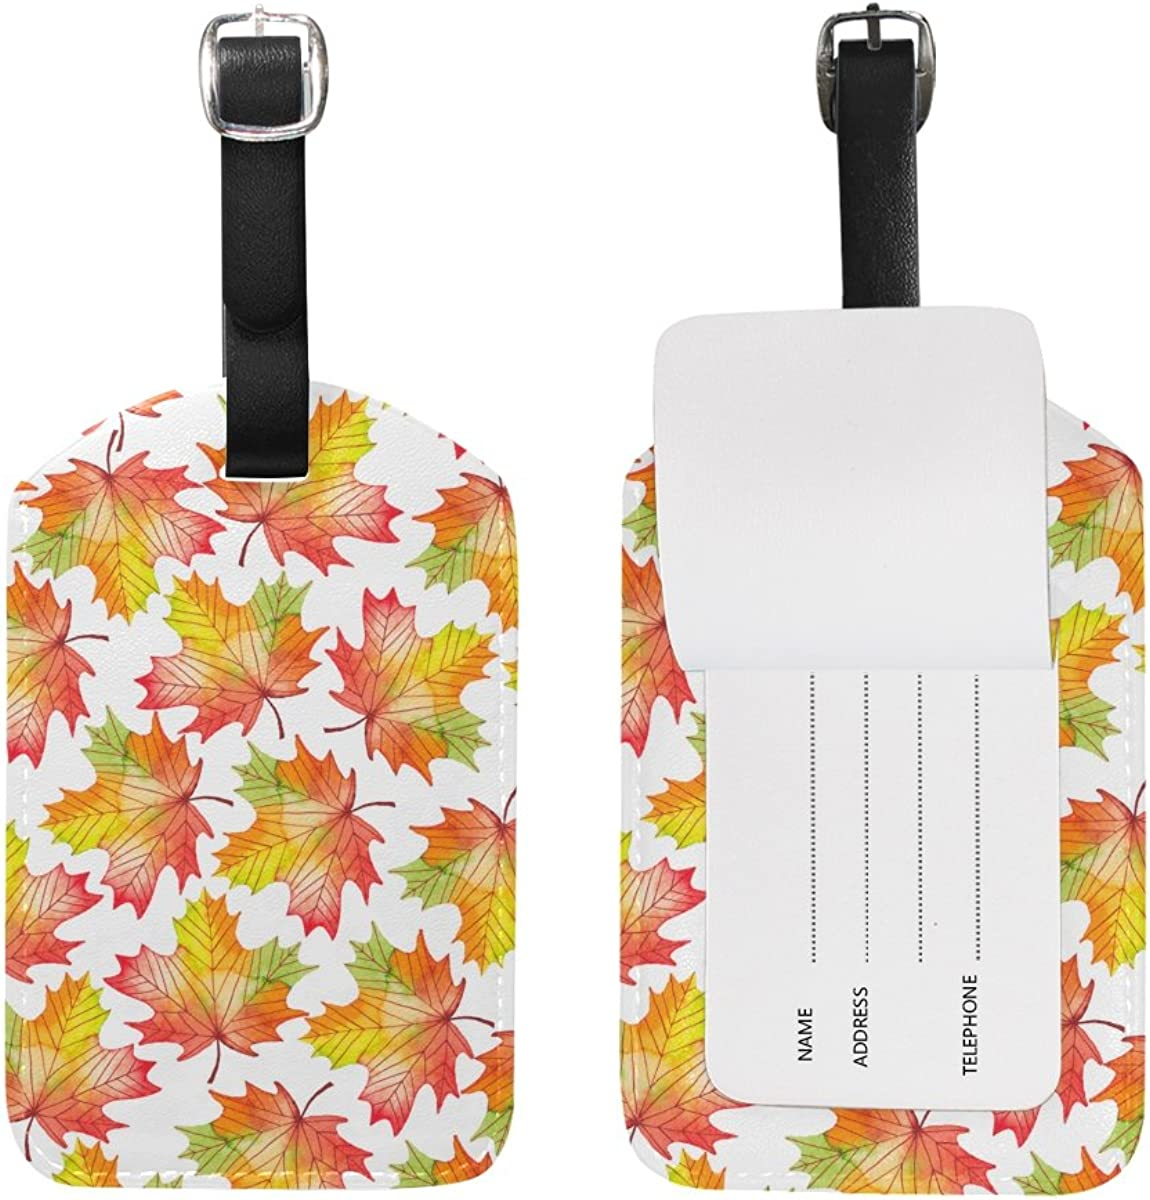 Chen Miranda Watercolor Fall Maple Travel Luggage Suitcase Label ID Tag for Baggage 1 Piece